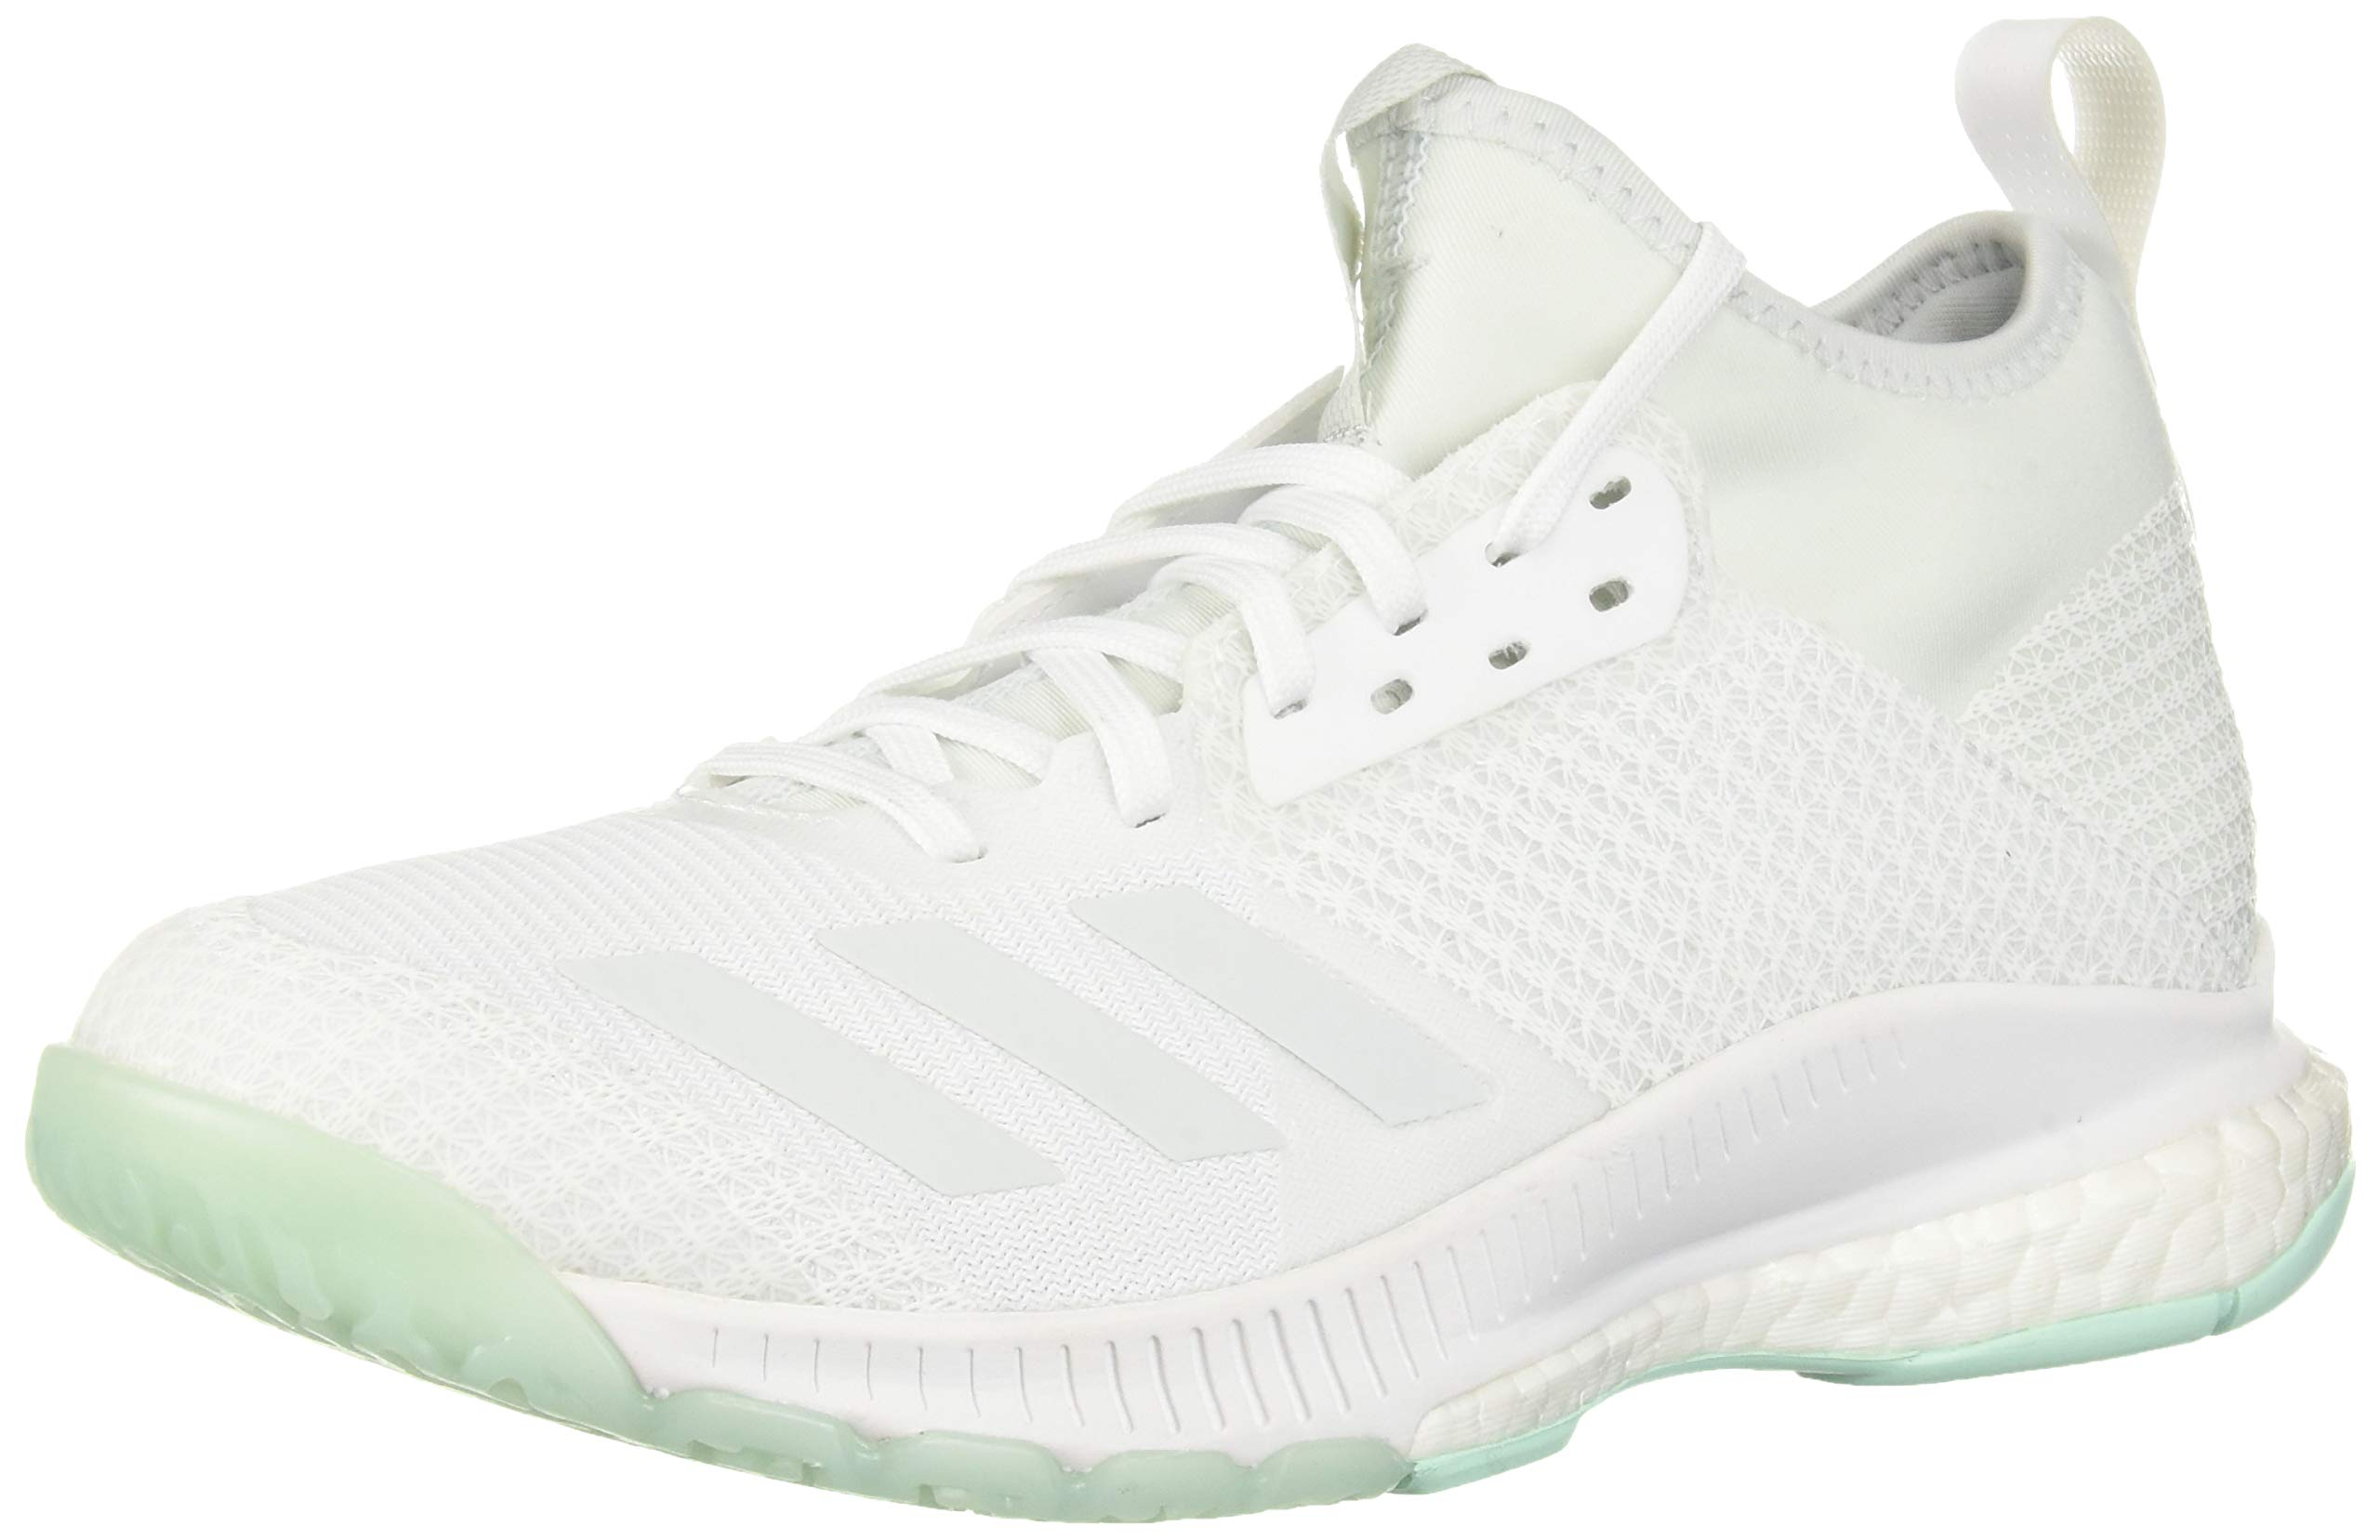 detailed look 26560 35c78 adidas Women s Crazyflight X 2 Mid Volleyball Shoe product image